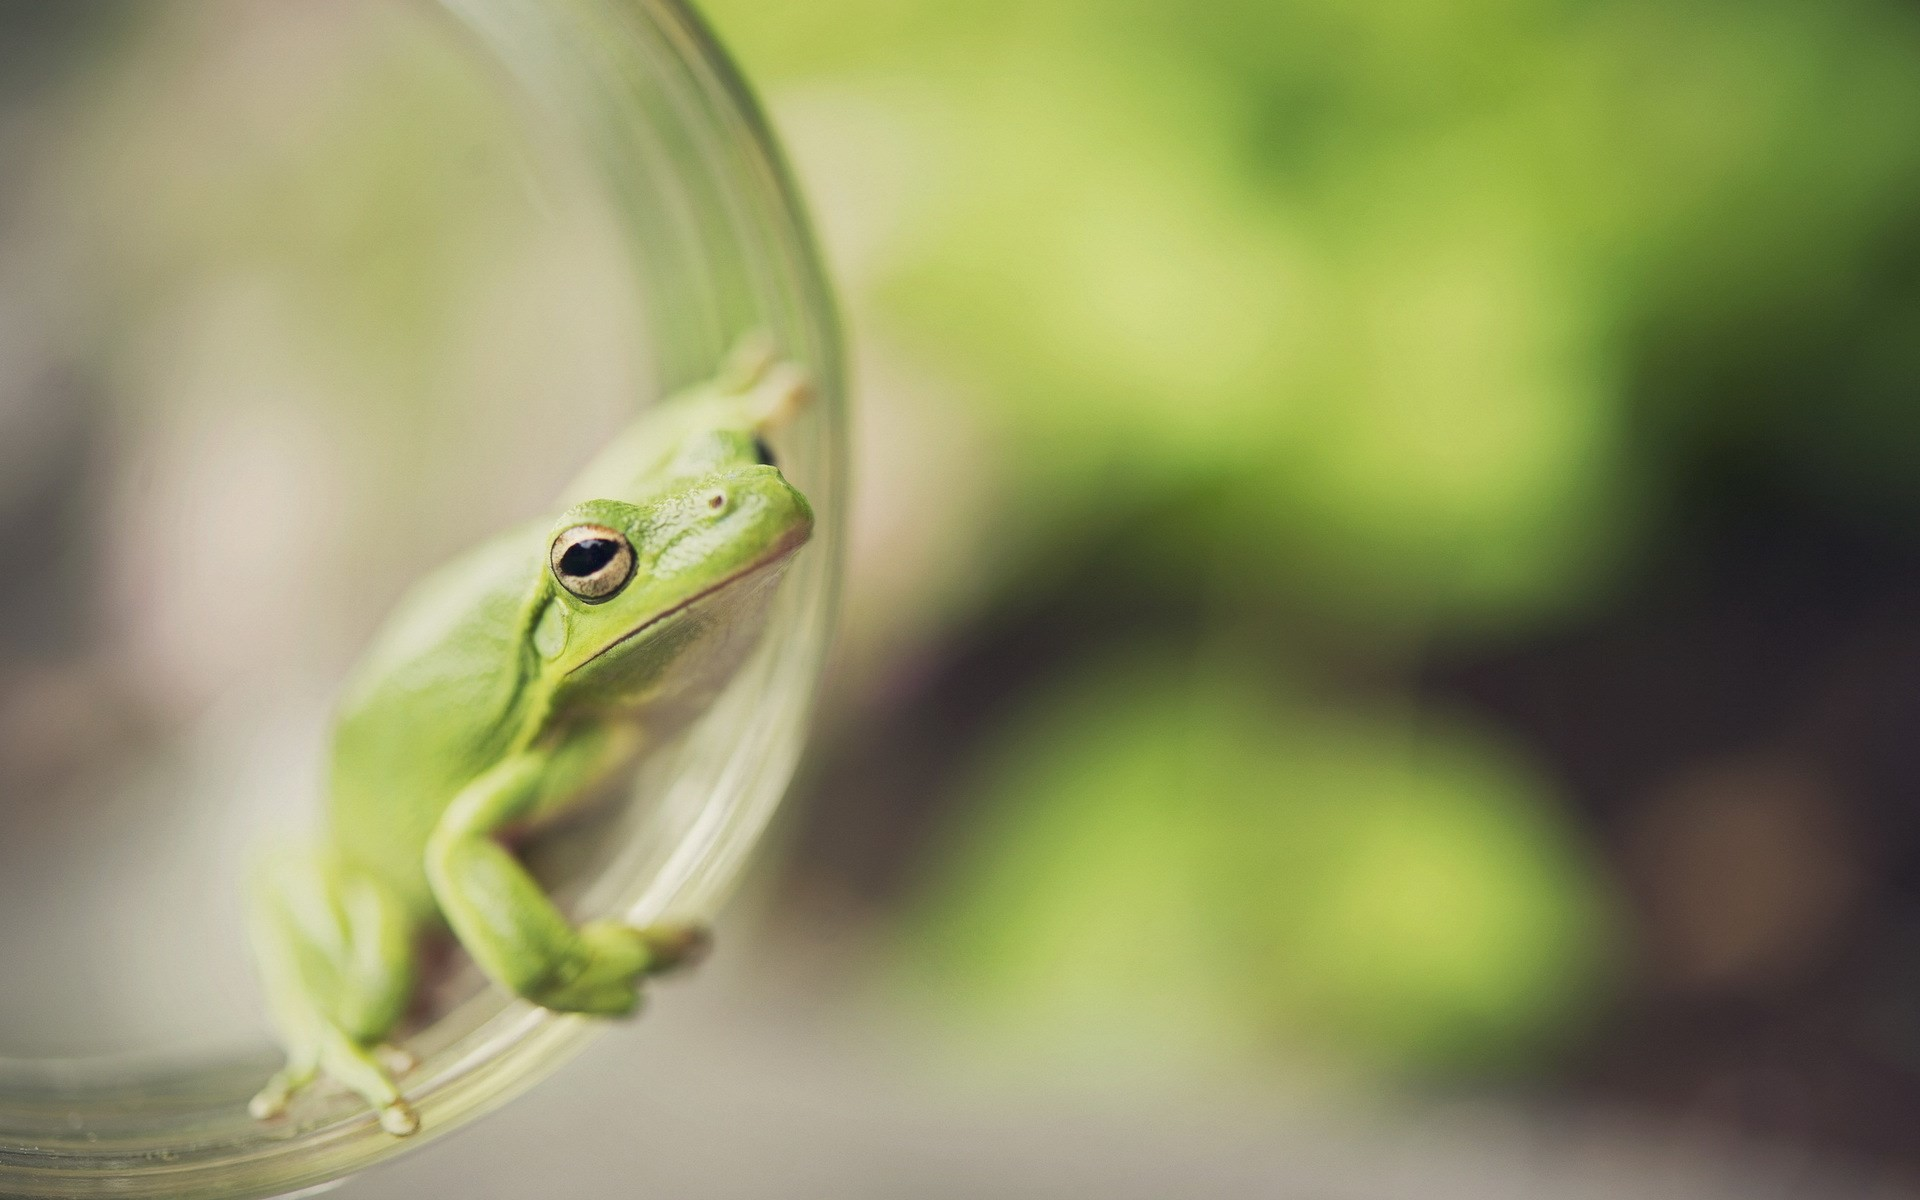 frog wallpaper hd backgrounds images (Orton Allford 1920×1200)